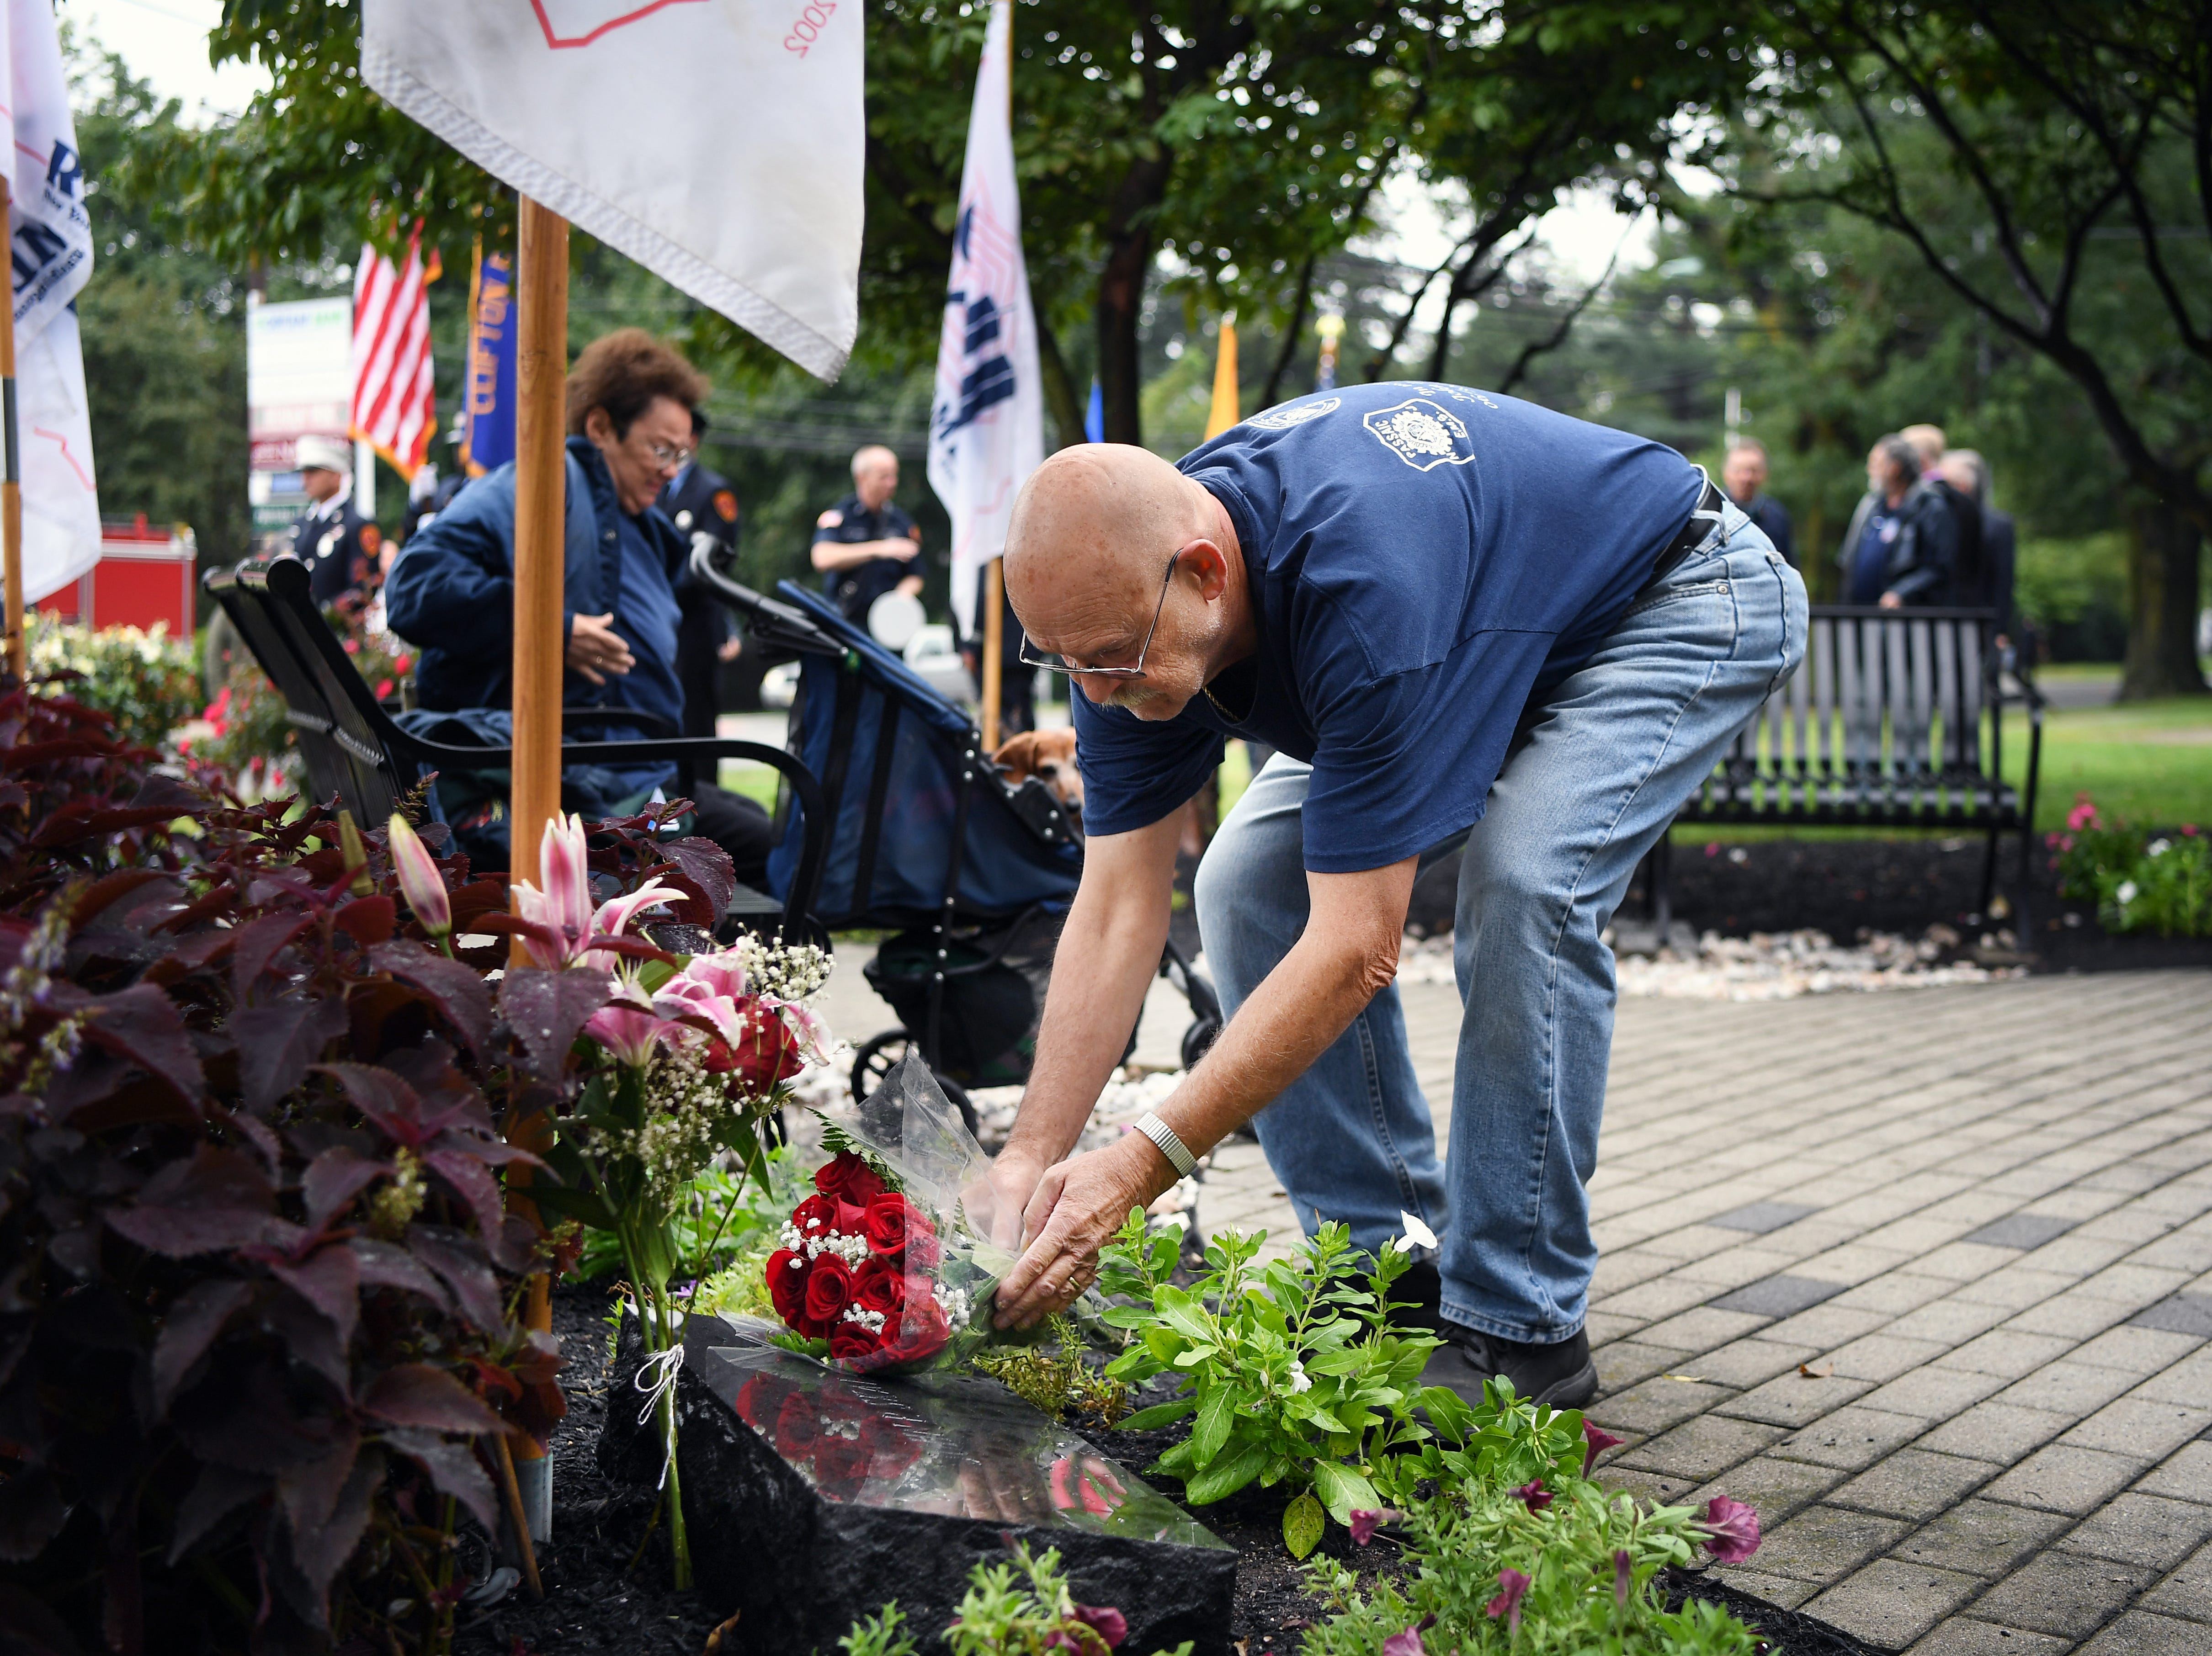 Robert Yuhas places flowers on a memorial for Port Authority Police Officer John Skala Jr. during a 9/11 memorial service at Clifton City Hall on Tuesday, September 11, 2018. John Skala Jr. was a Clifton resident who also worked as a part-time Emergency Medical Technician. He was killed on 9/11.